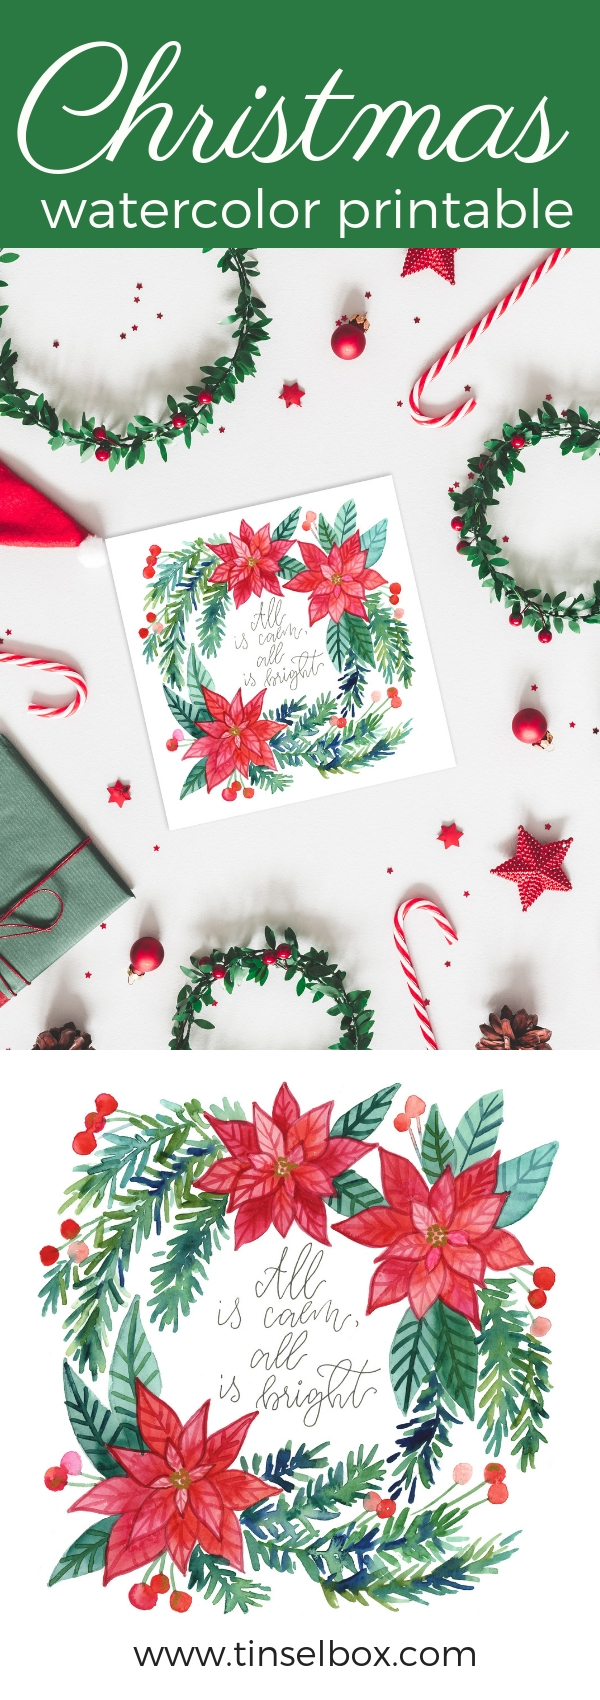 Christmas Watercolor Printable All is Calm All is Bright Free Download